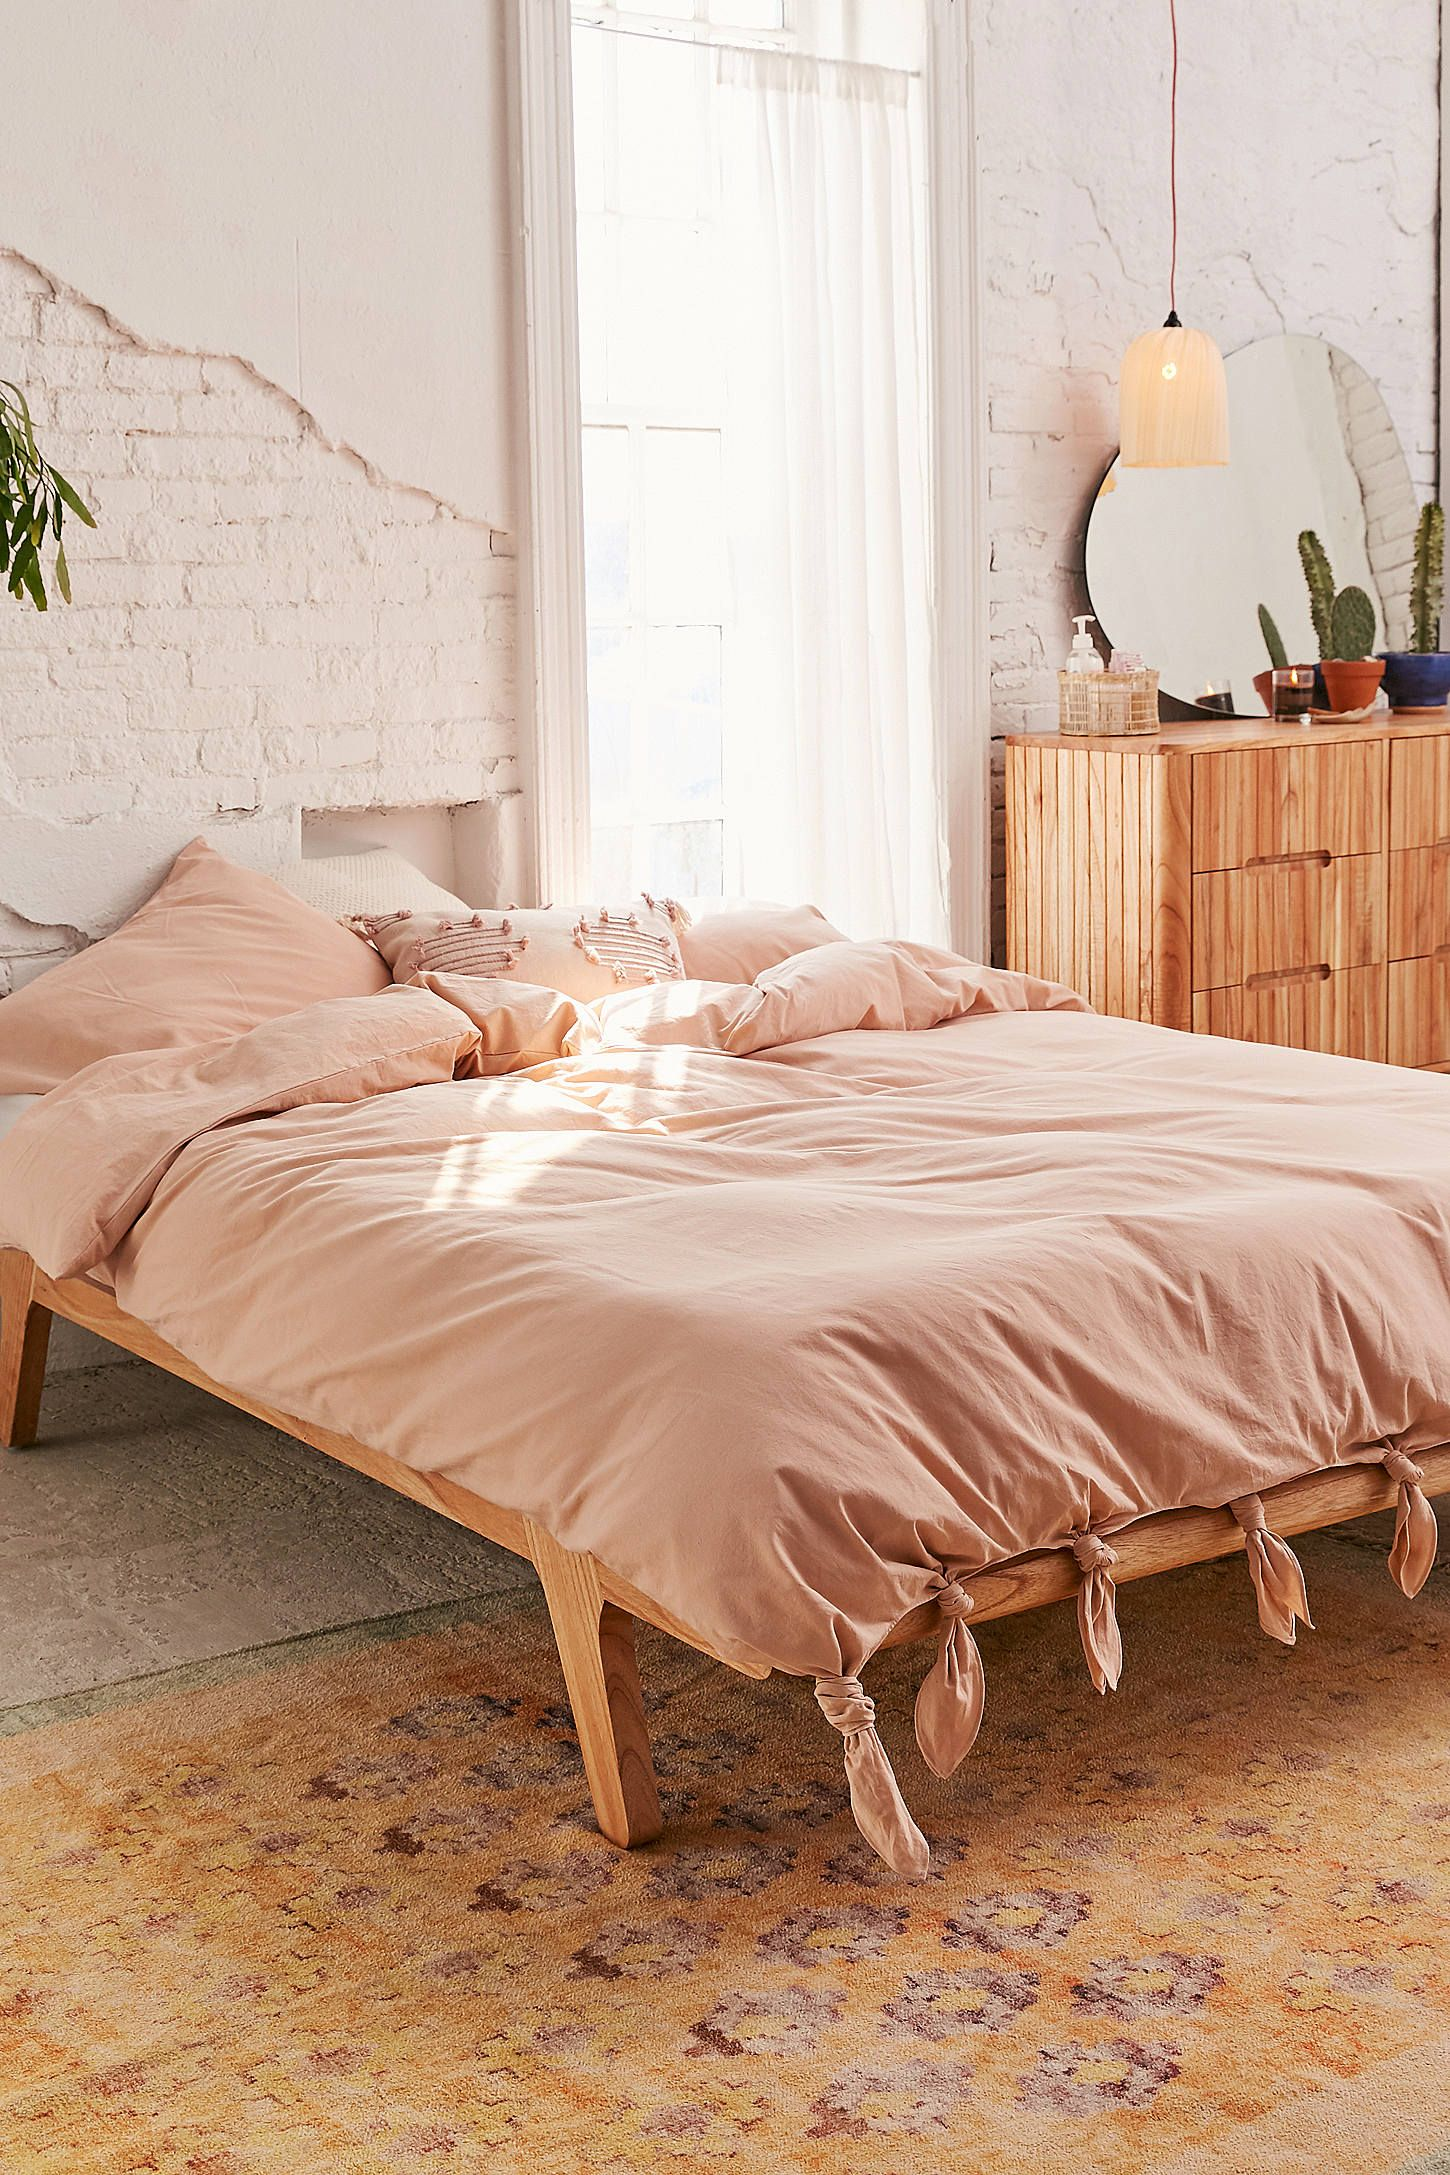 Knotted Washed Cotton Duvet Cover Urban Outfitters Stylish